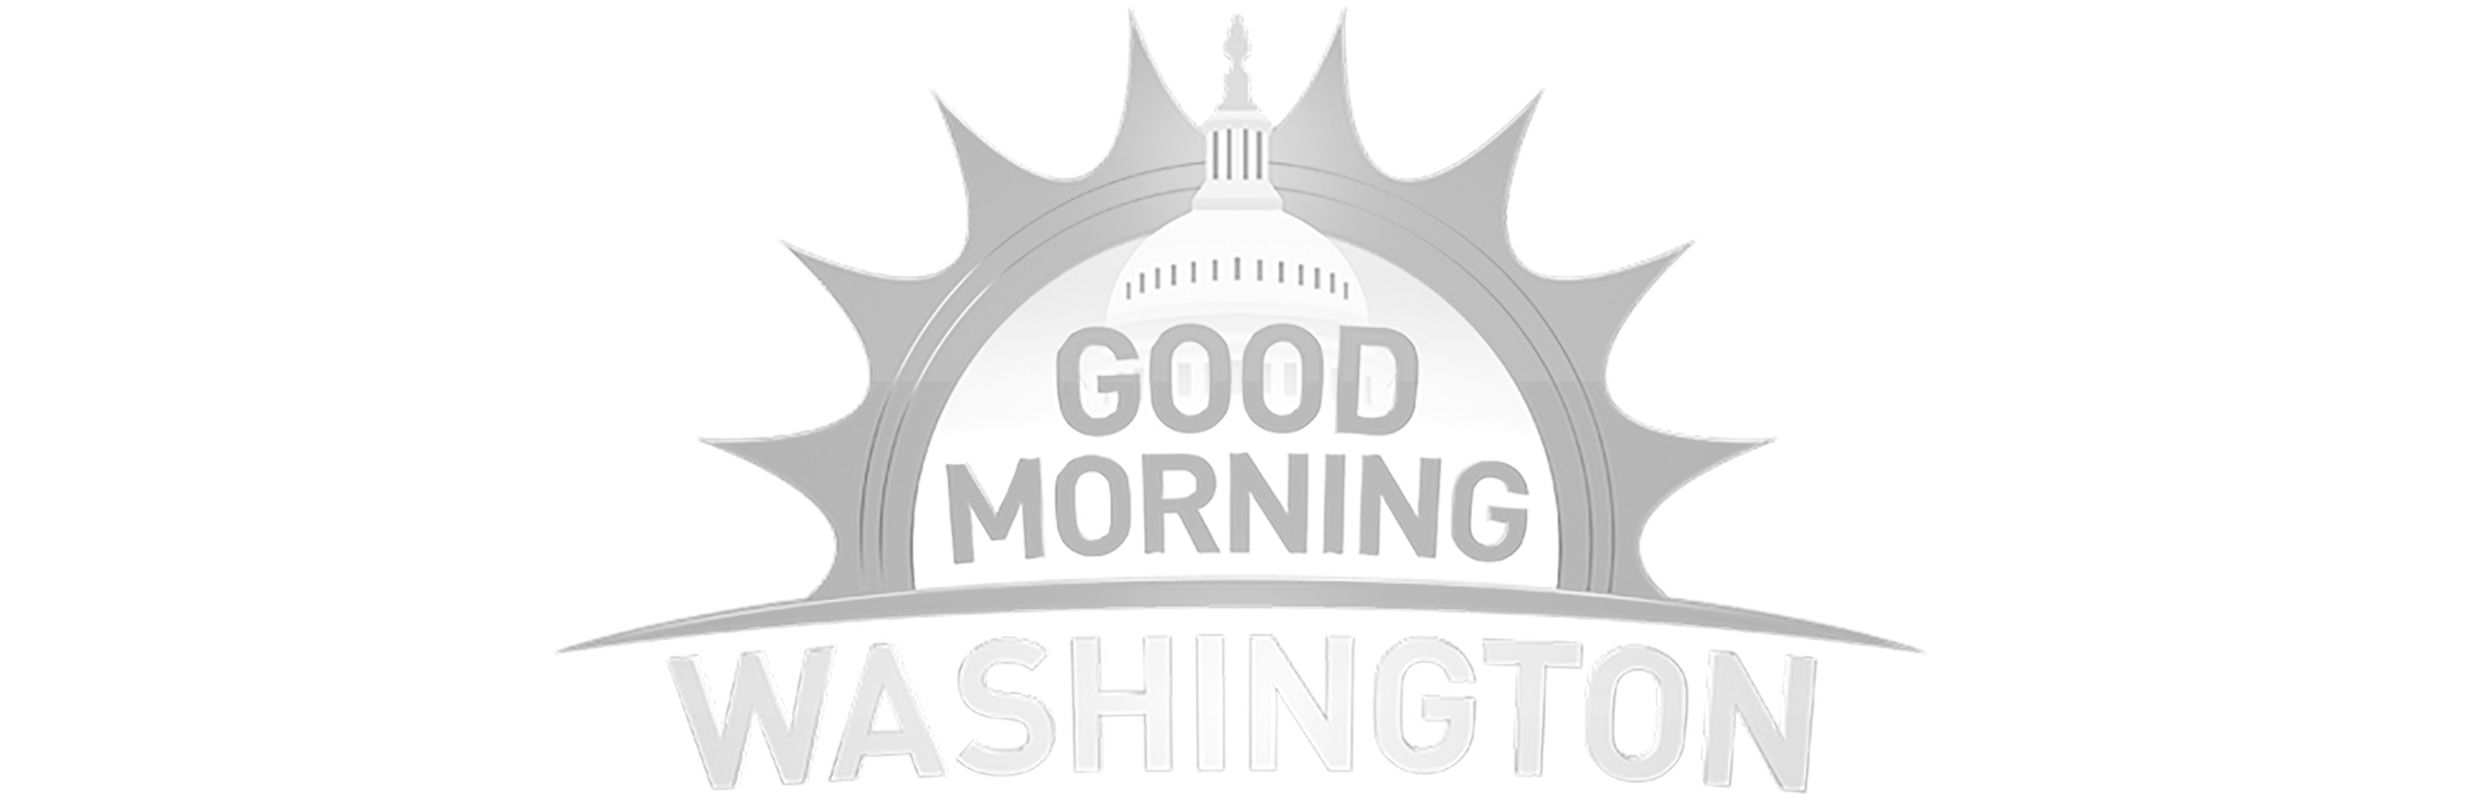 Good morning washington